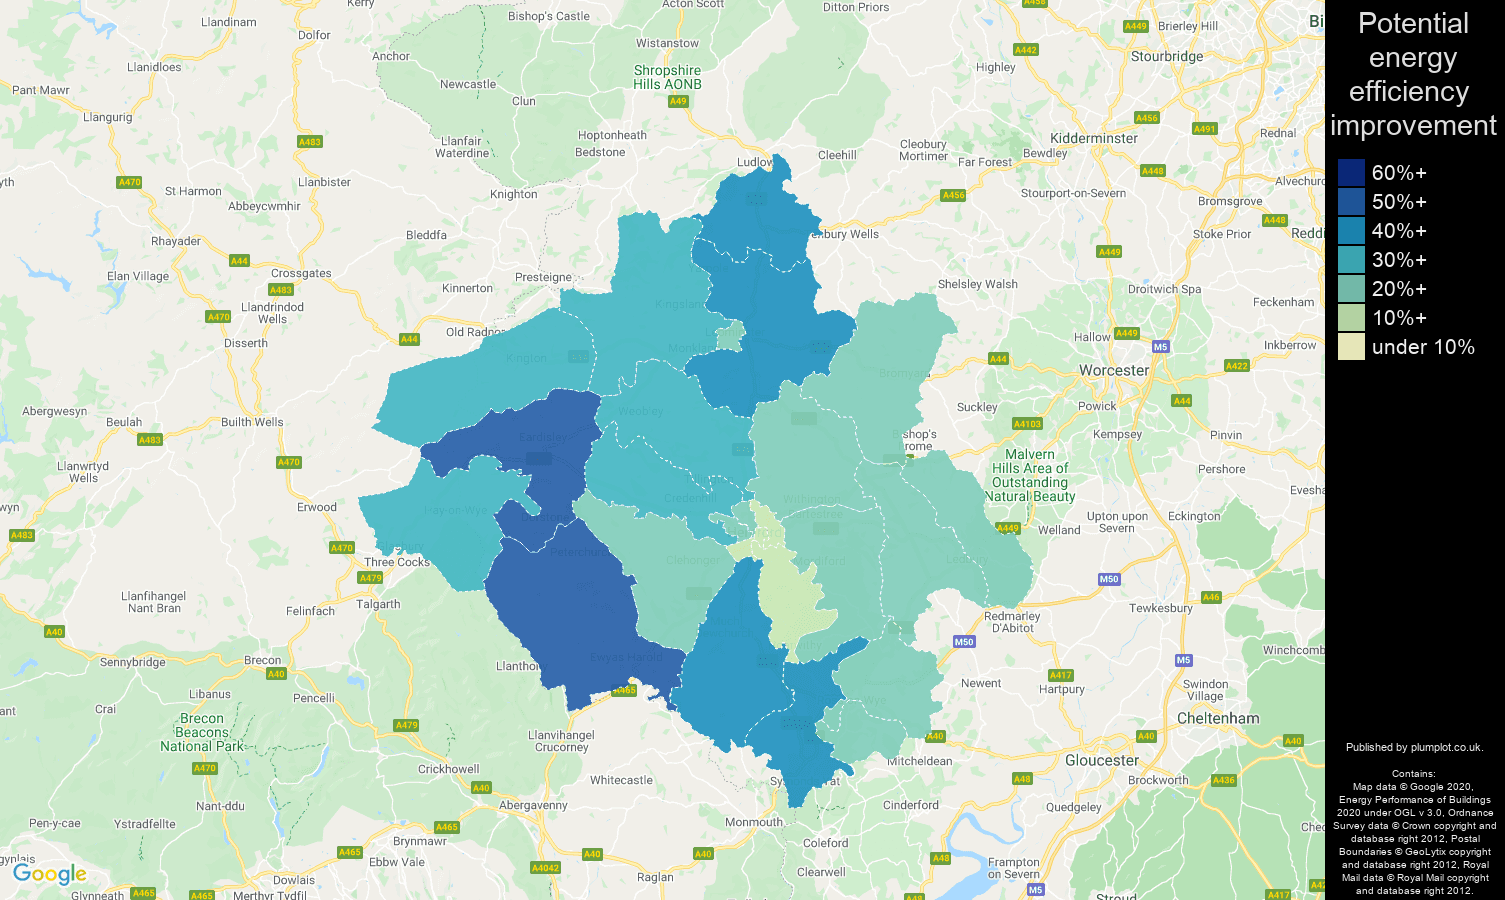 Herefordshire map of potential energy efficiency improvement of properties